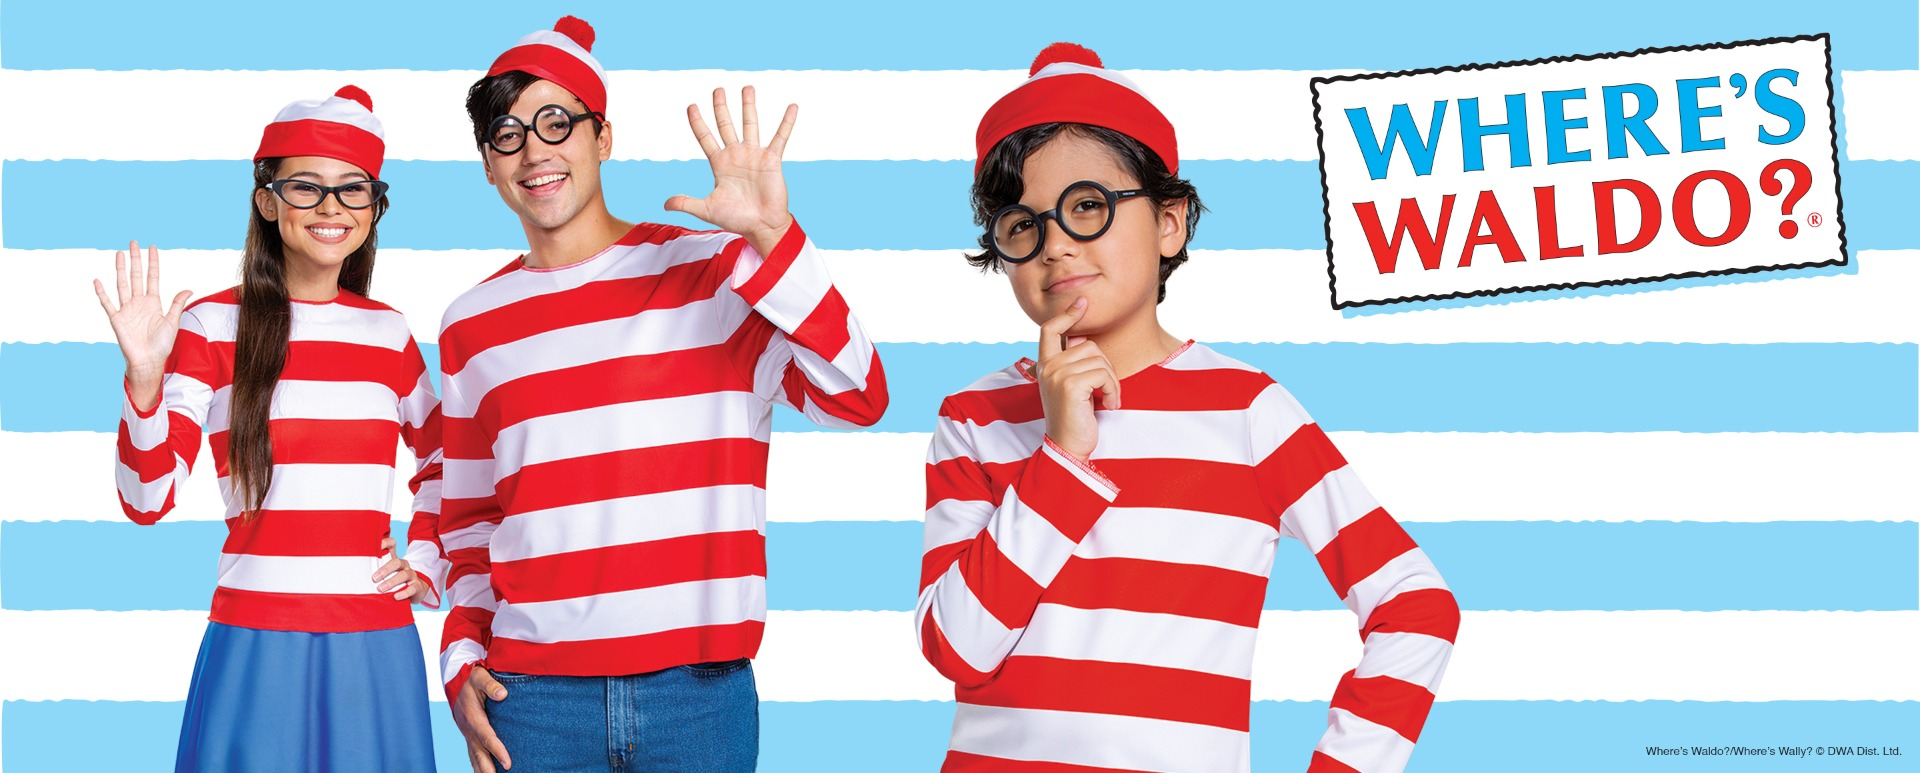 Wheres Waldo costumes